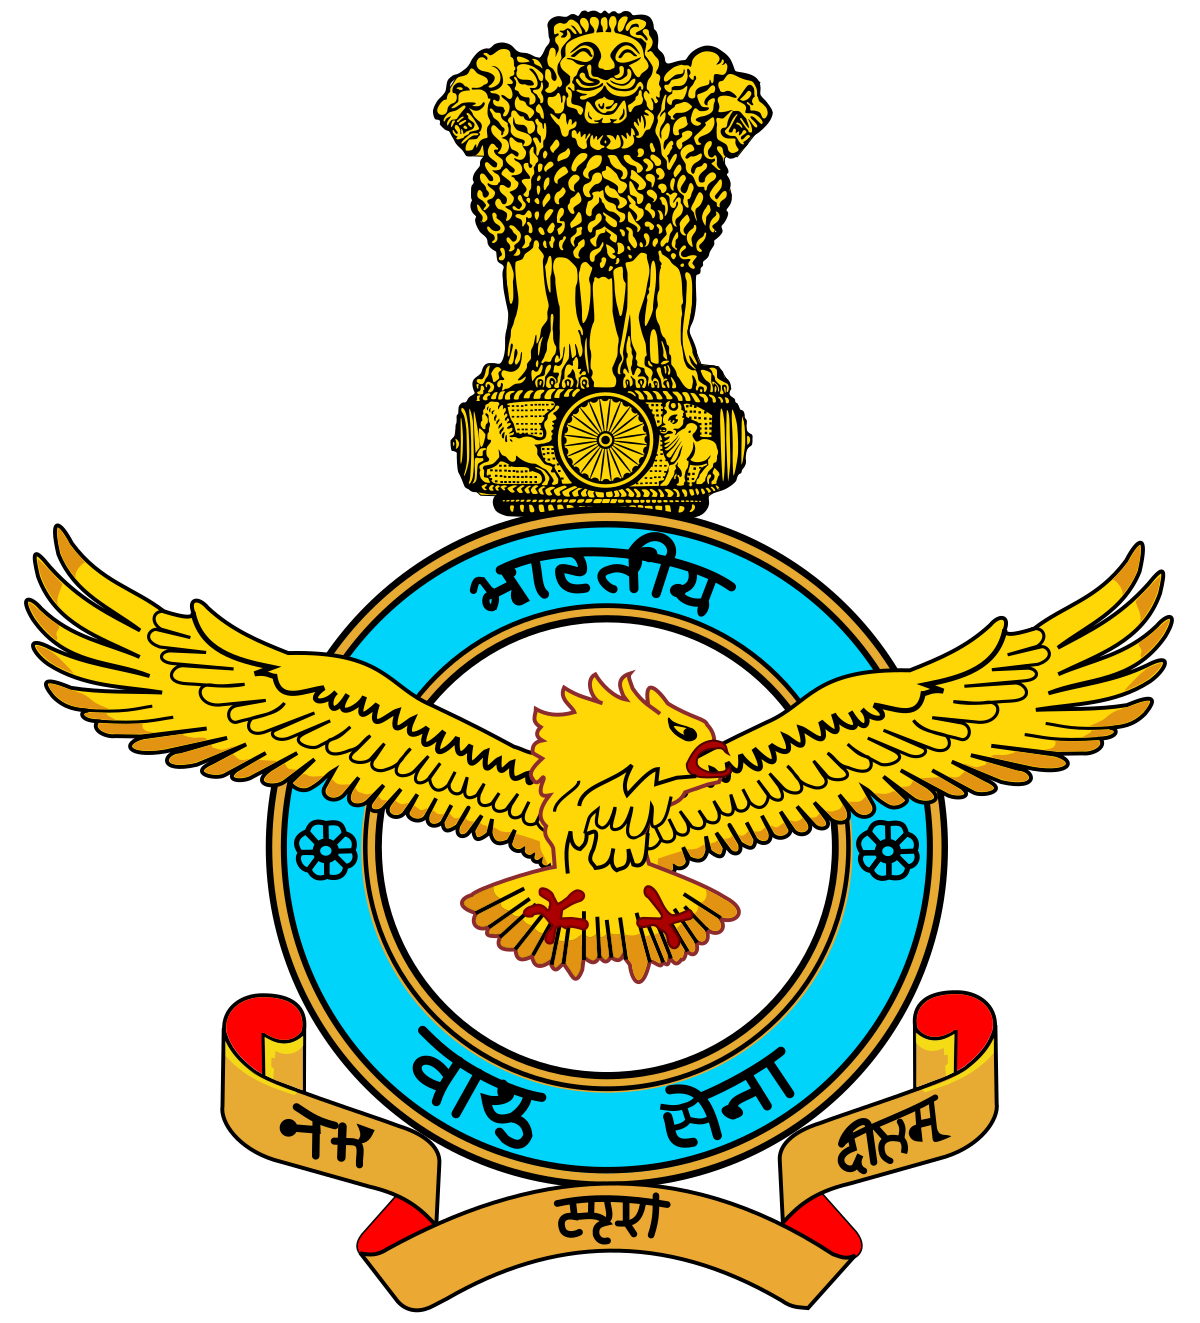 This logo belongs to which government organisation of India?